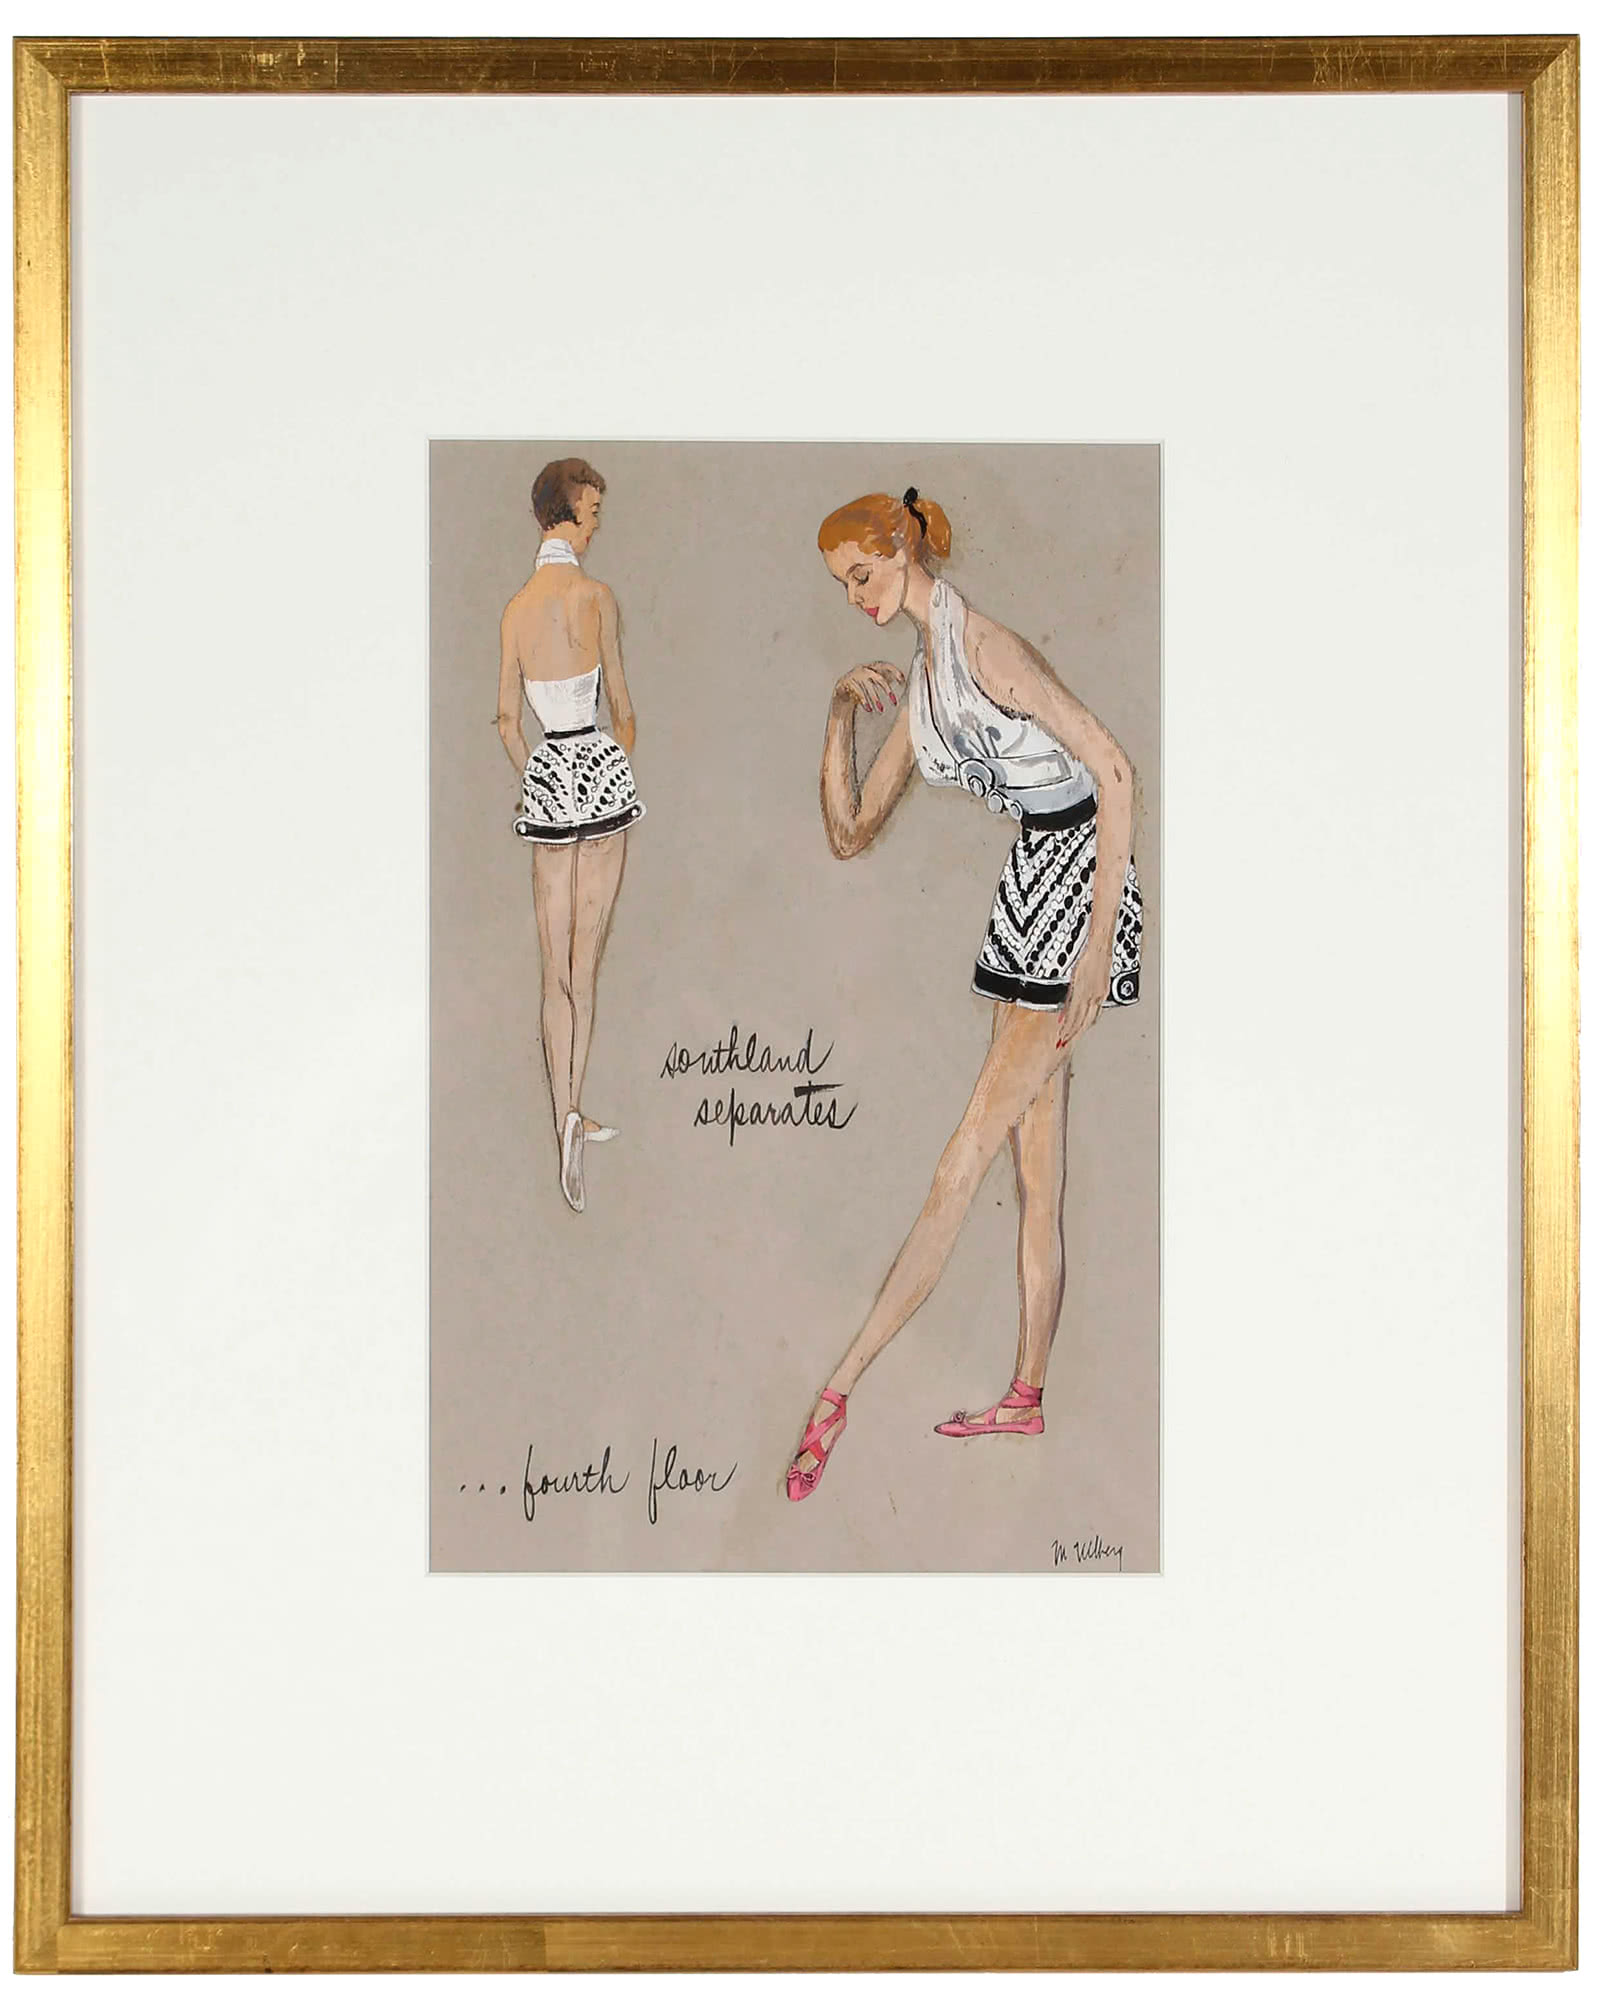 Mixed Media Fashion Design by Marjorie Ullberg,